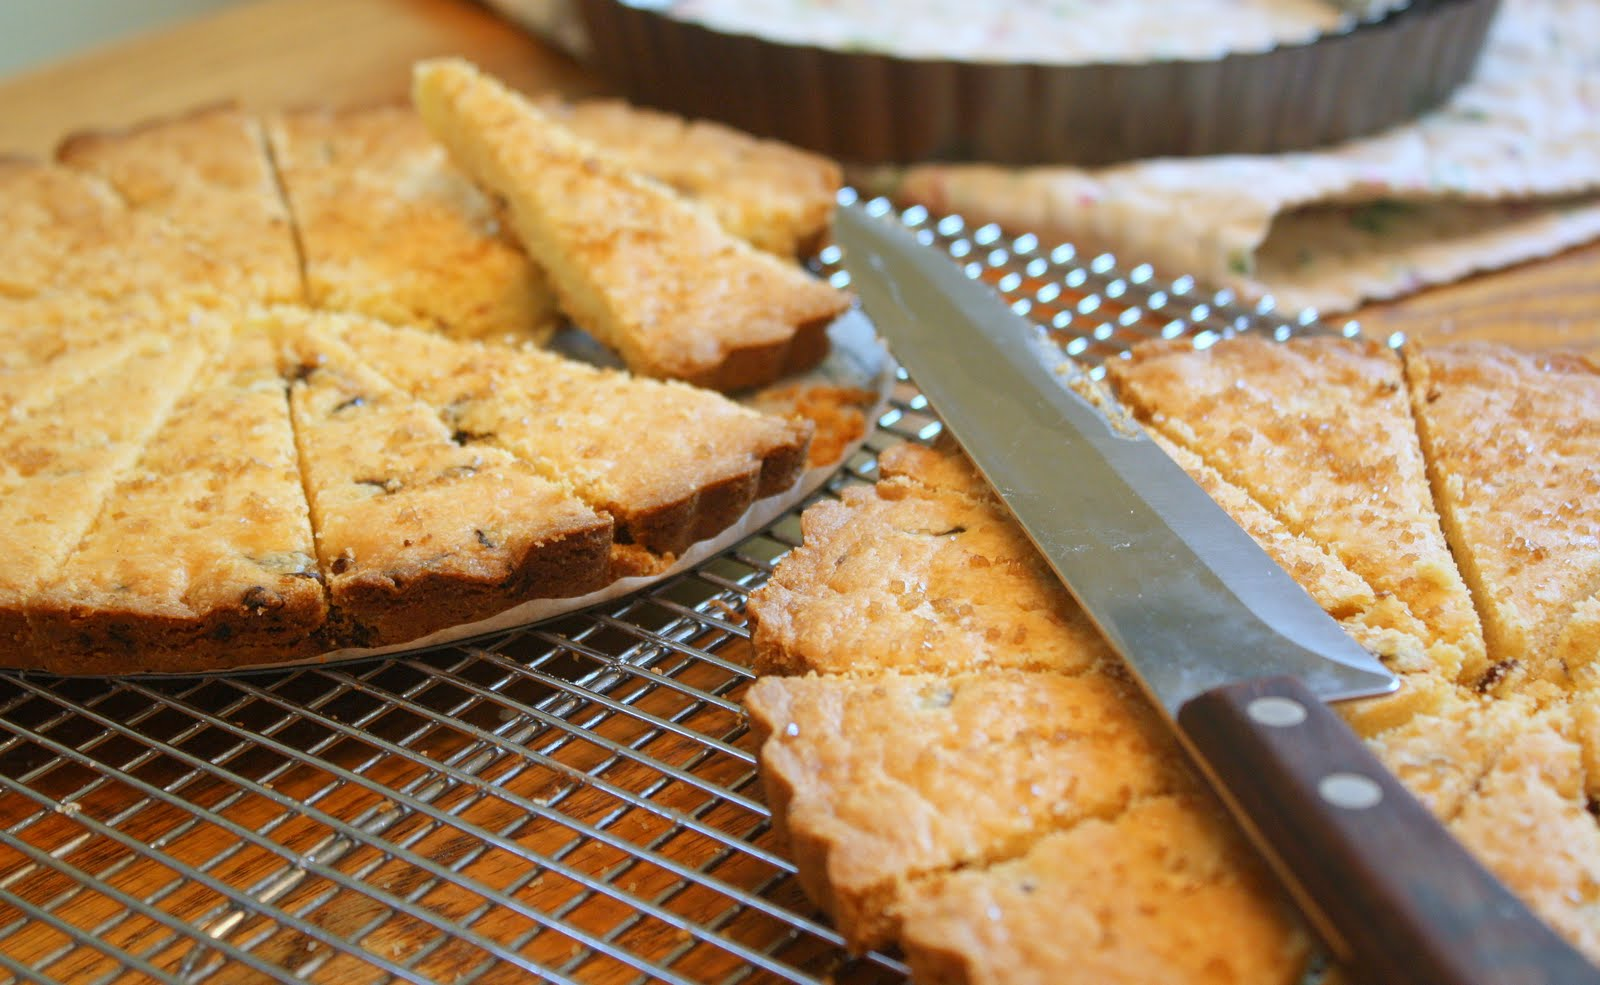 ... Cookie Stands Alone: Cornmeal Shortbread with Sweet Dried Cherries